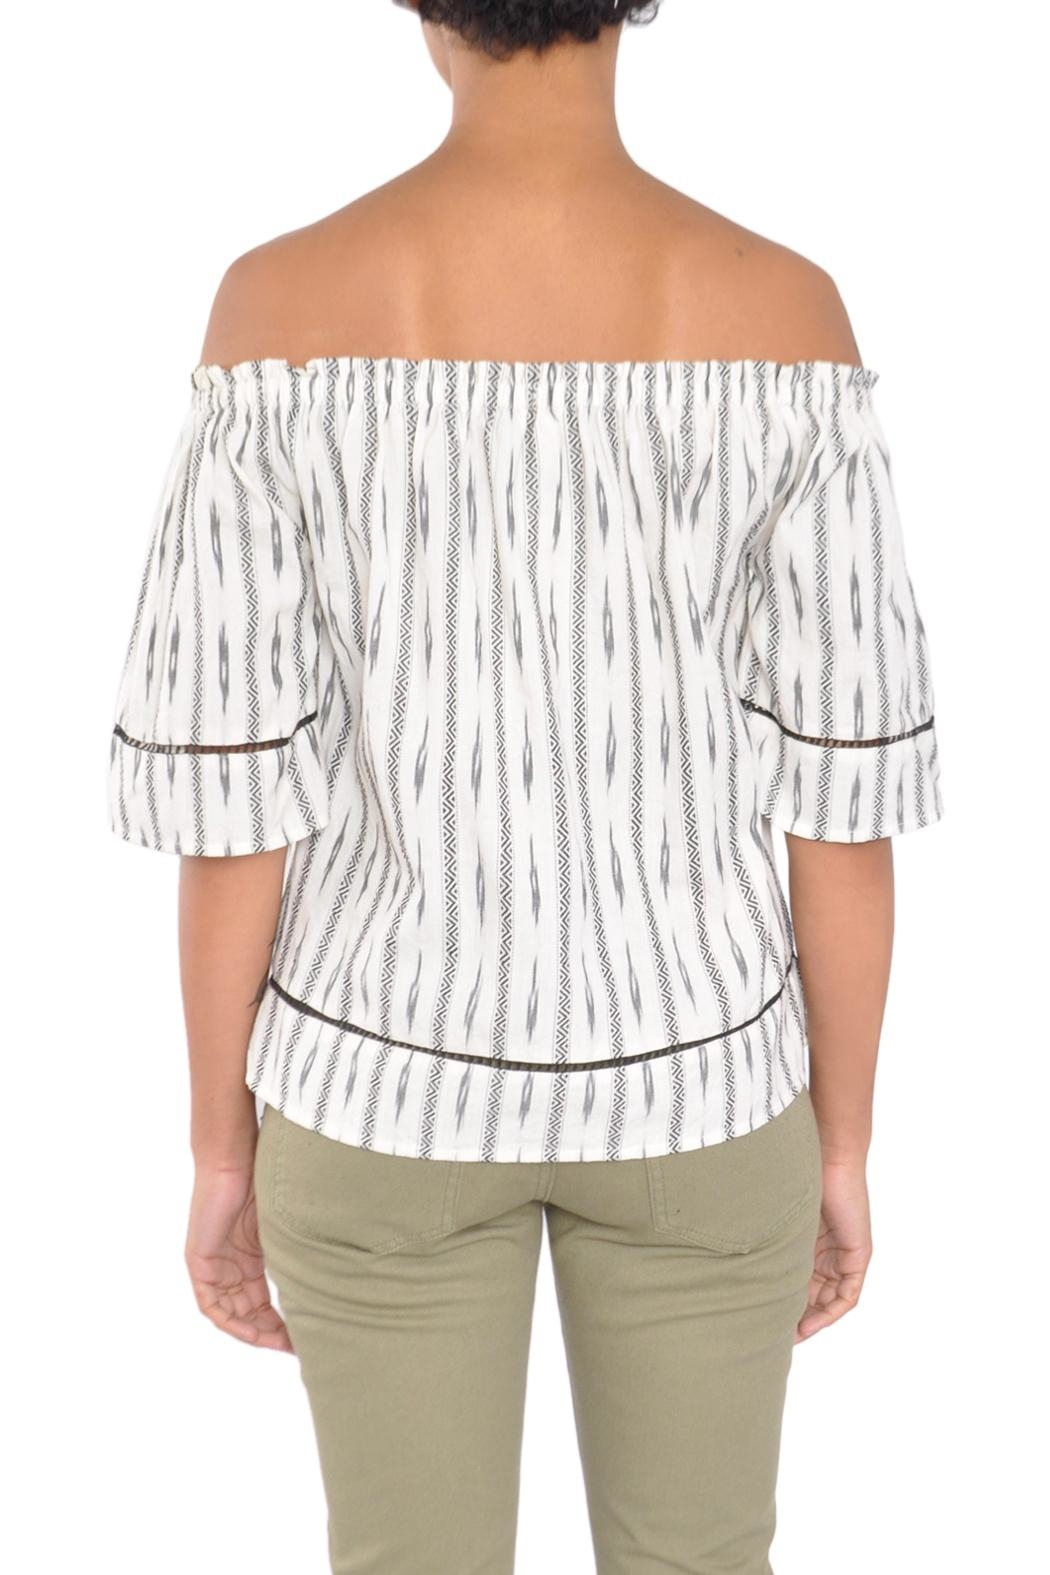 4our Dreamers Ikat Off-Shoulder Top - Side Cropped Image